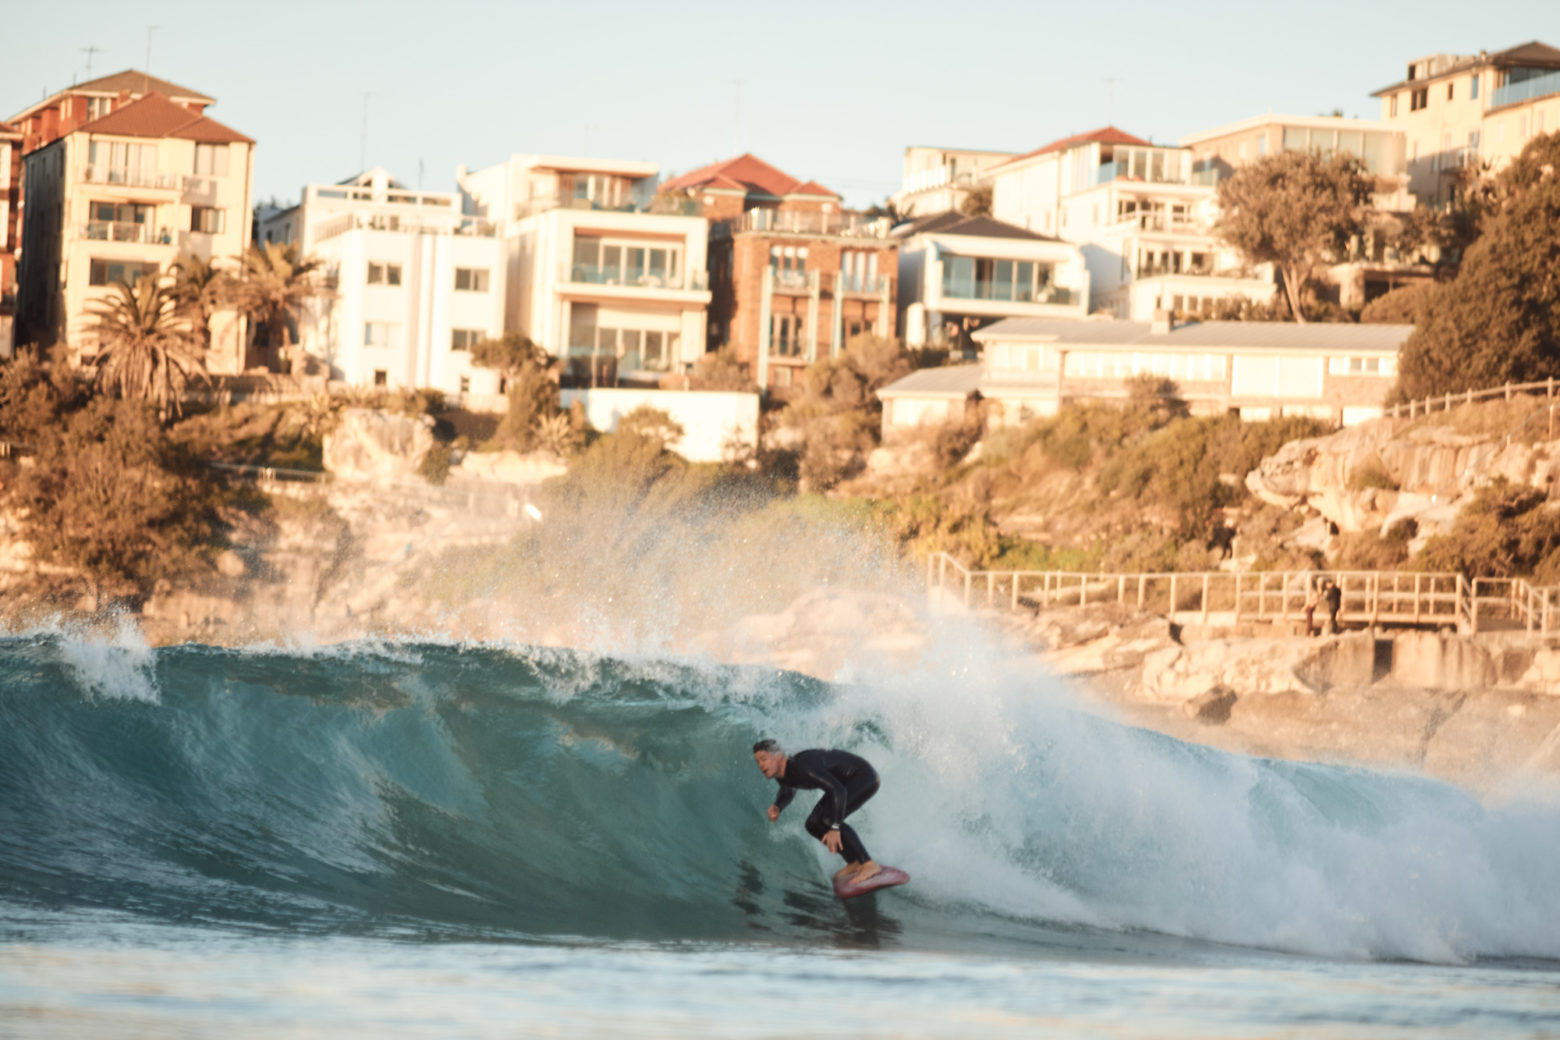 Tom Naylor nailing the rip bowl in the south